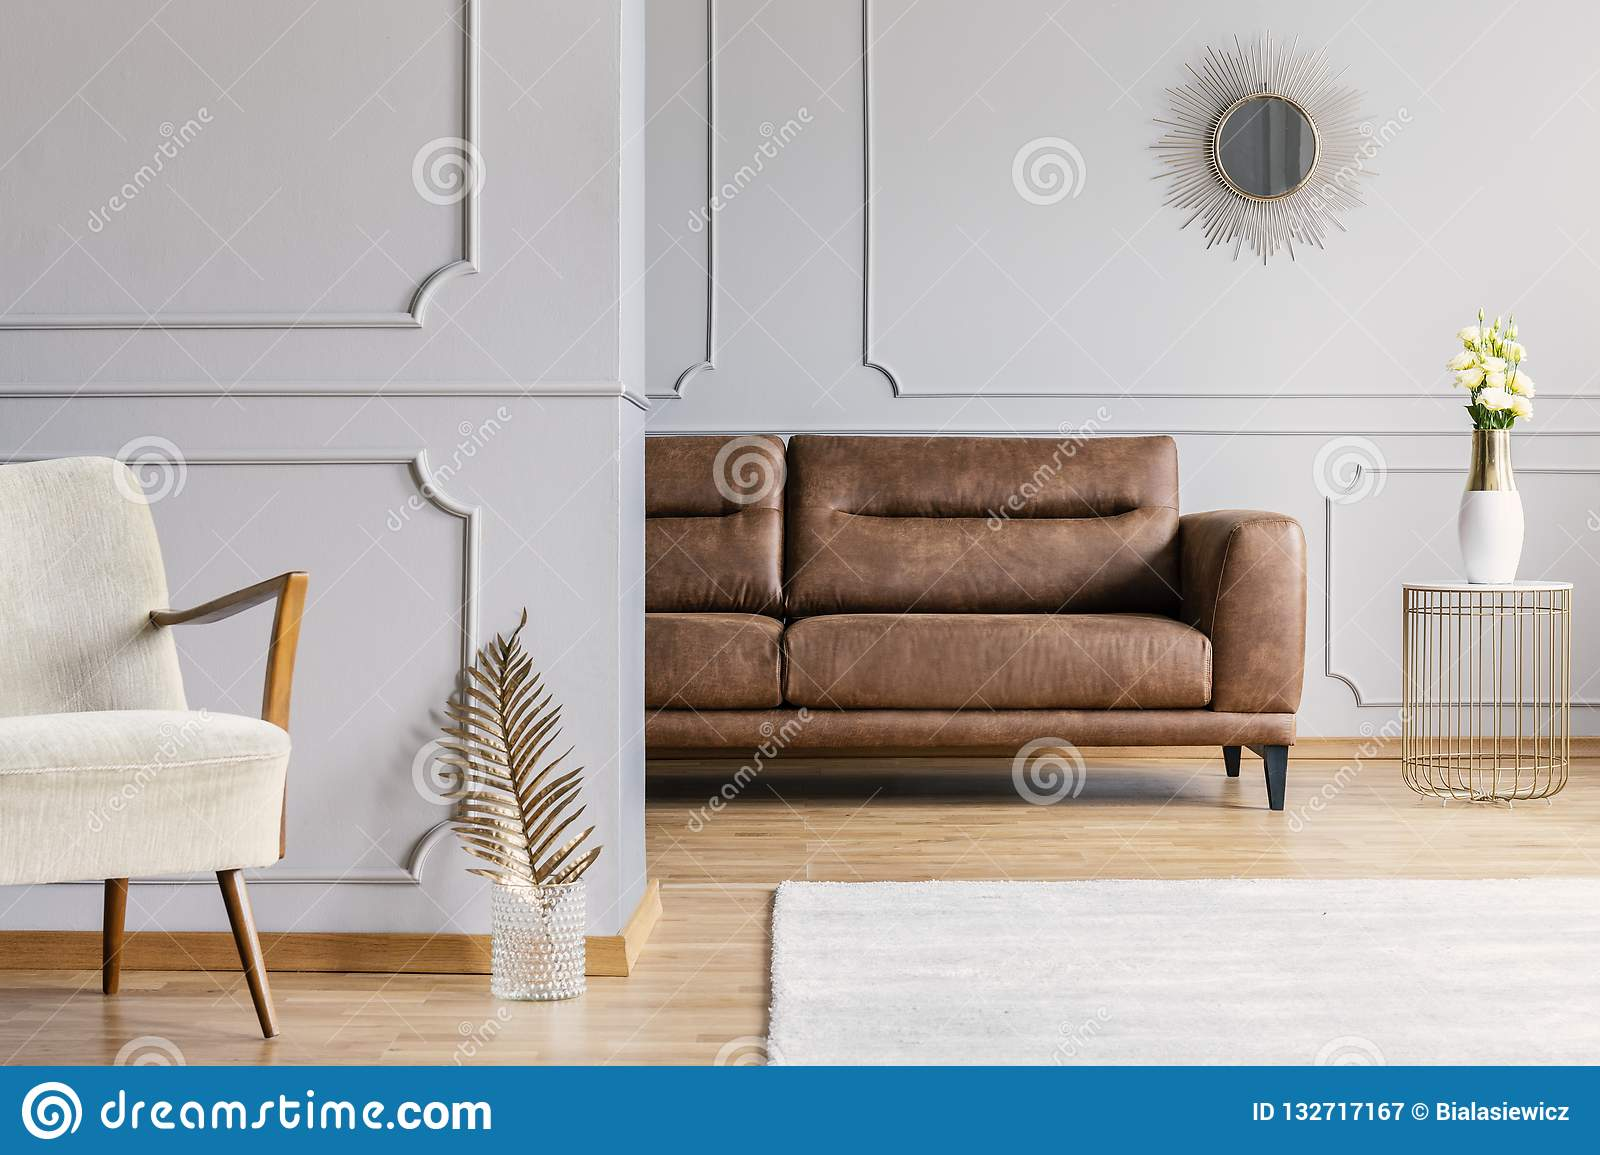 Living Room Interior With Decorative Mirror On Wall With Wainscoting Brown Leather Sofa Fresh Roses On End Table And Stock Image Image Of Bright Furniture 132717167